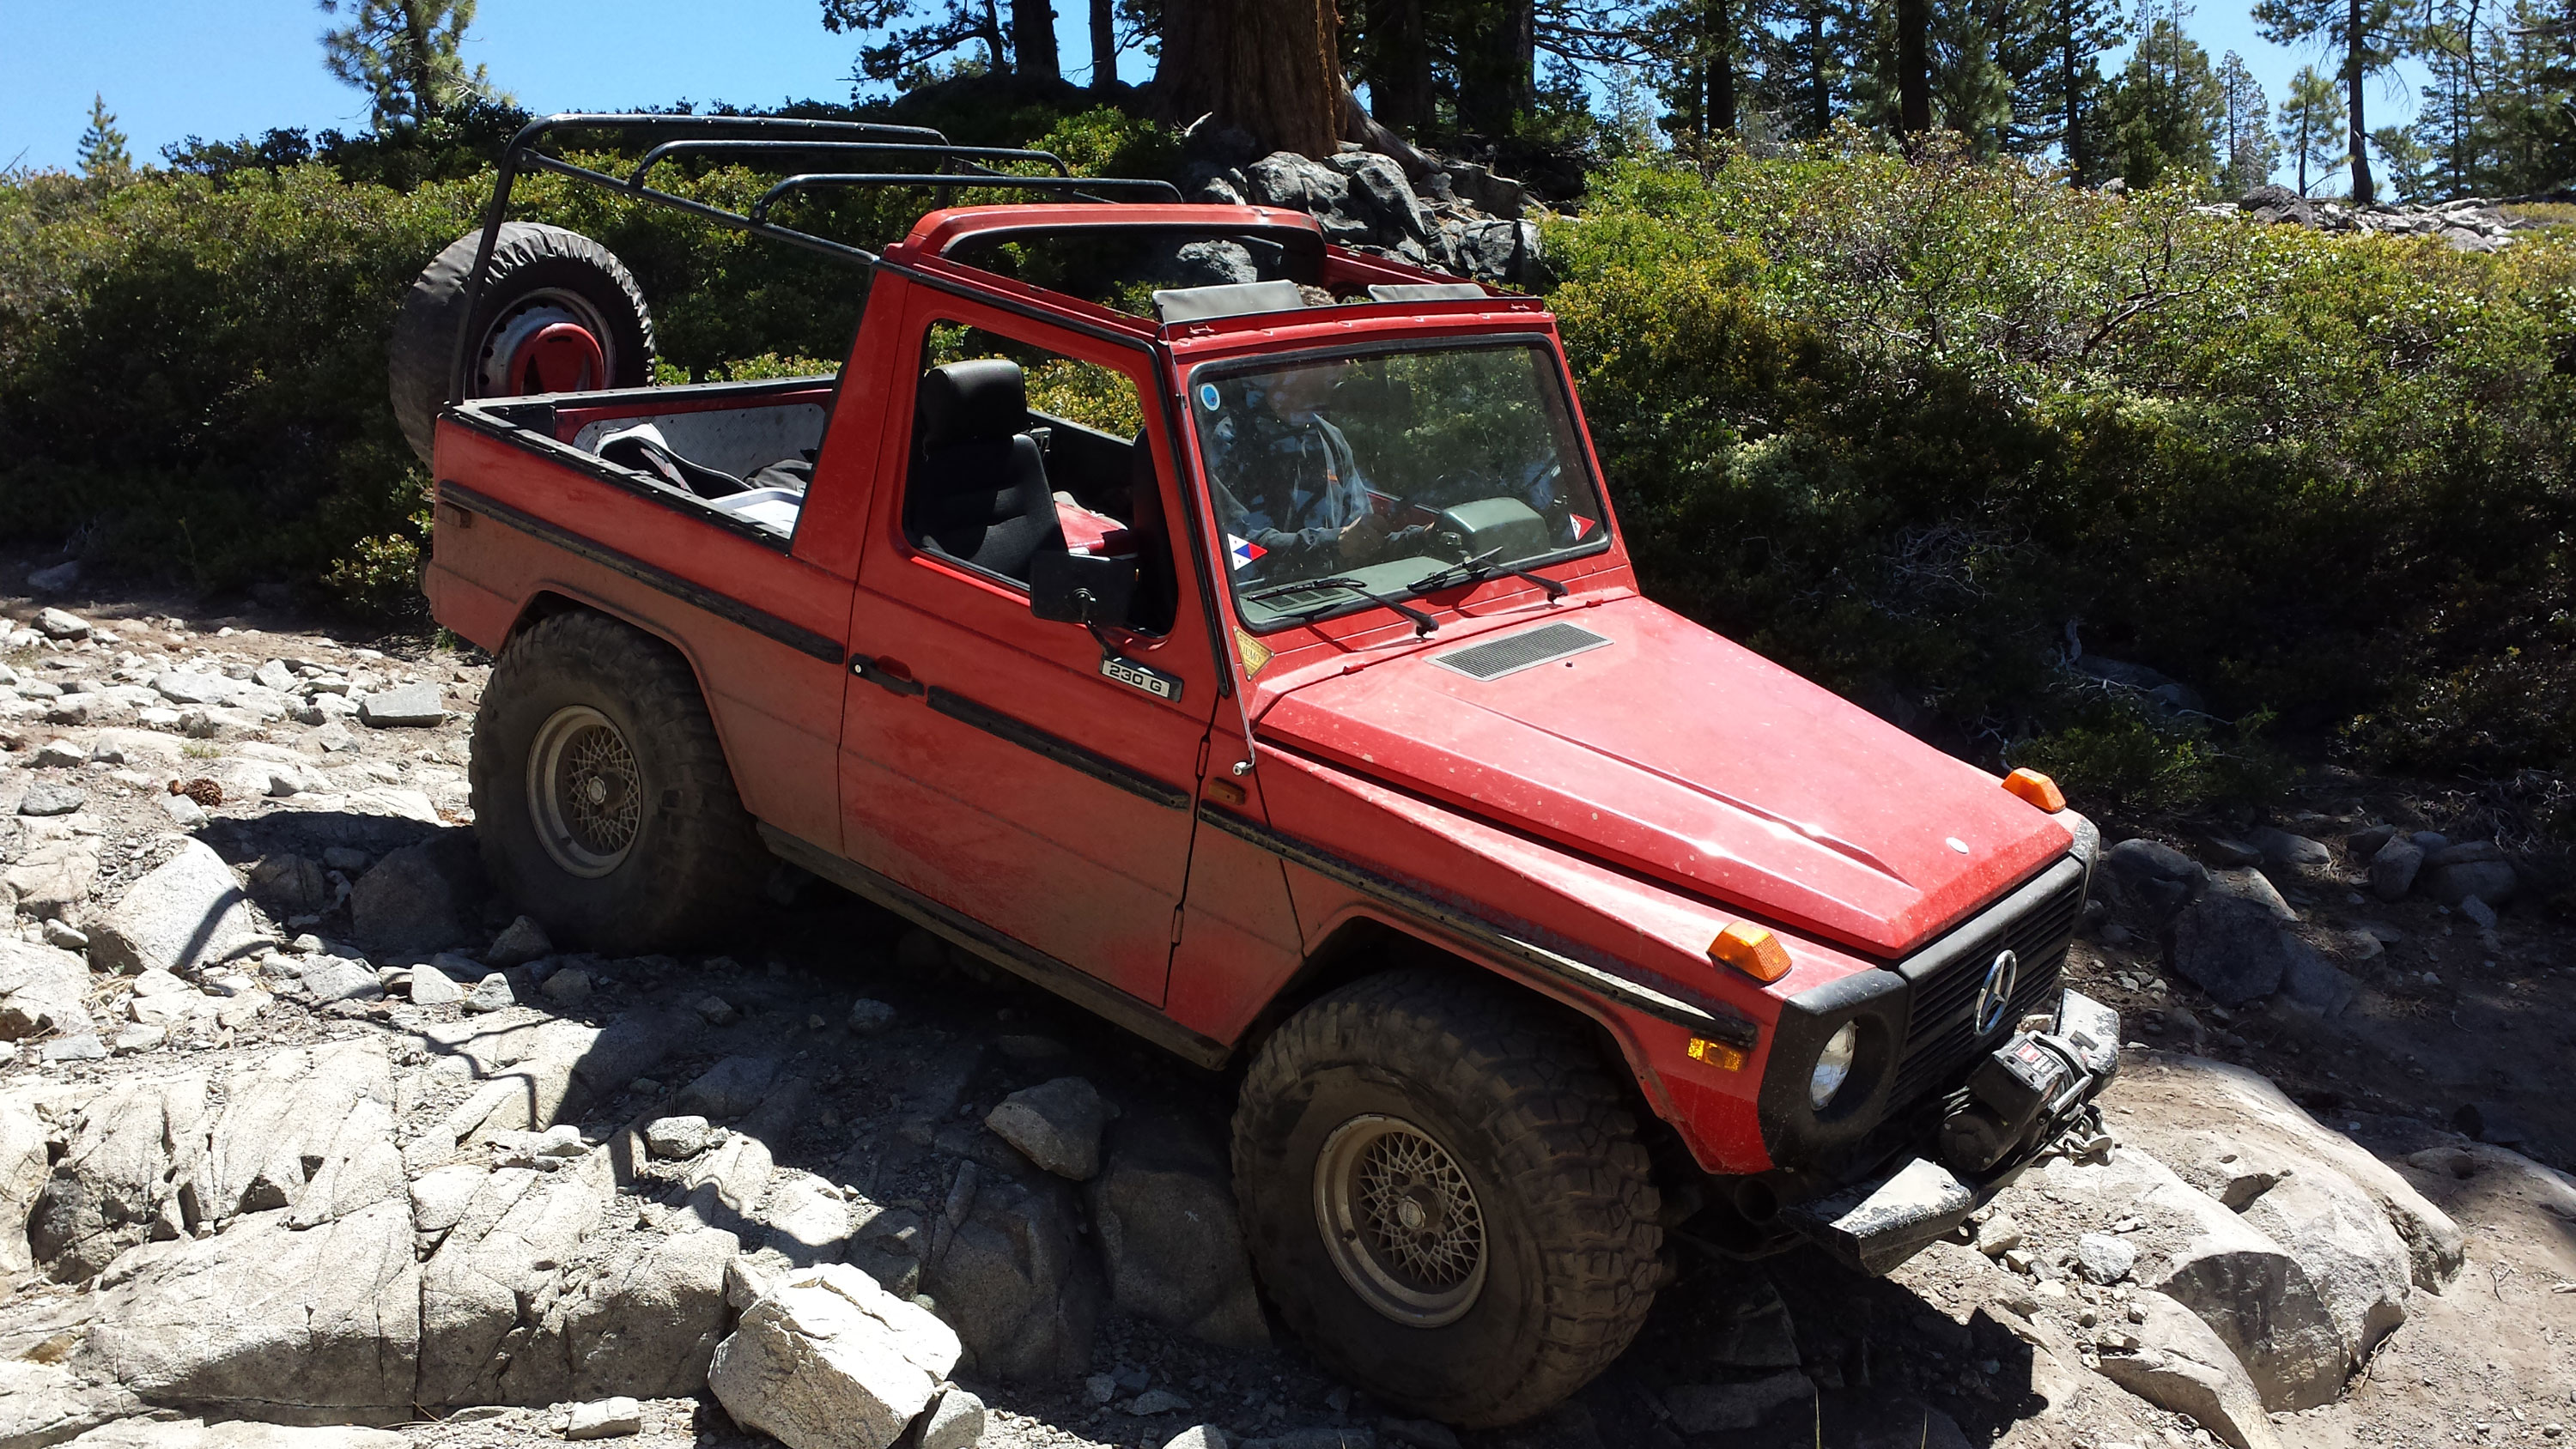 Mike Serpe in a 1980 230G with a four-speed manual on the Rubicon Trail.